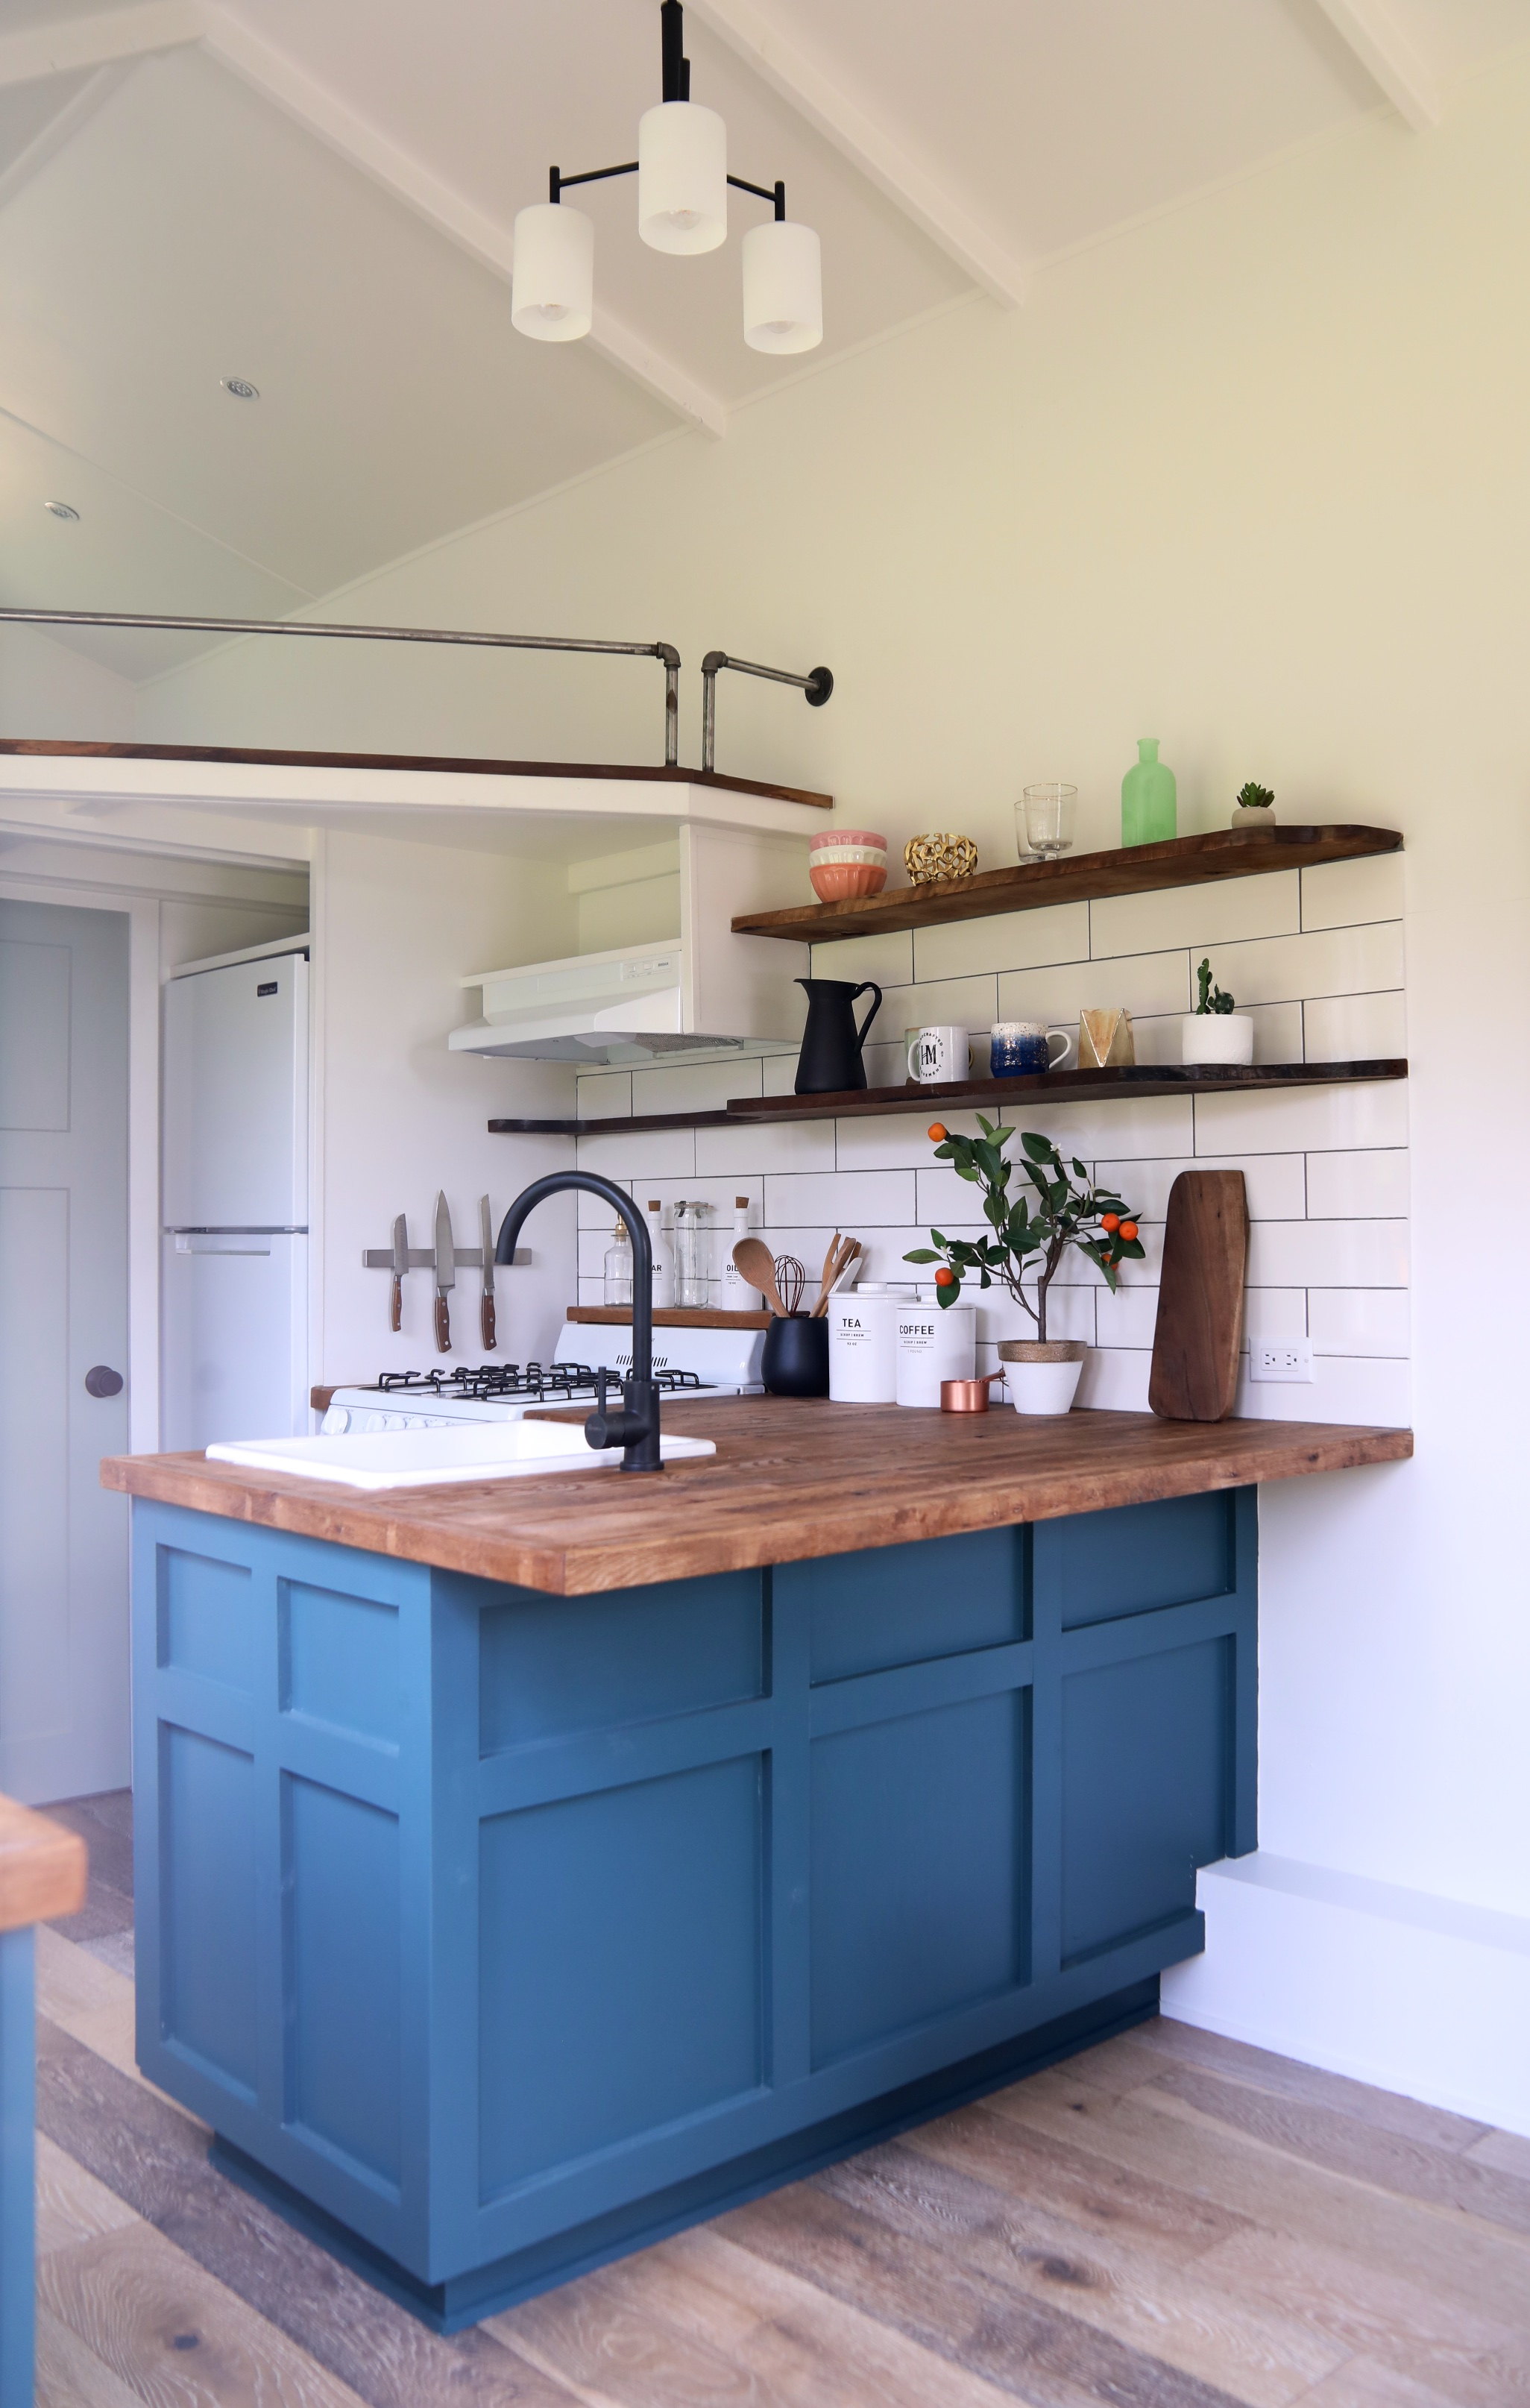 Seabrook Tiny Home by Handcrafted Movement